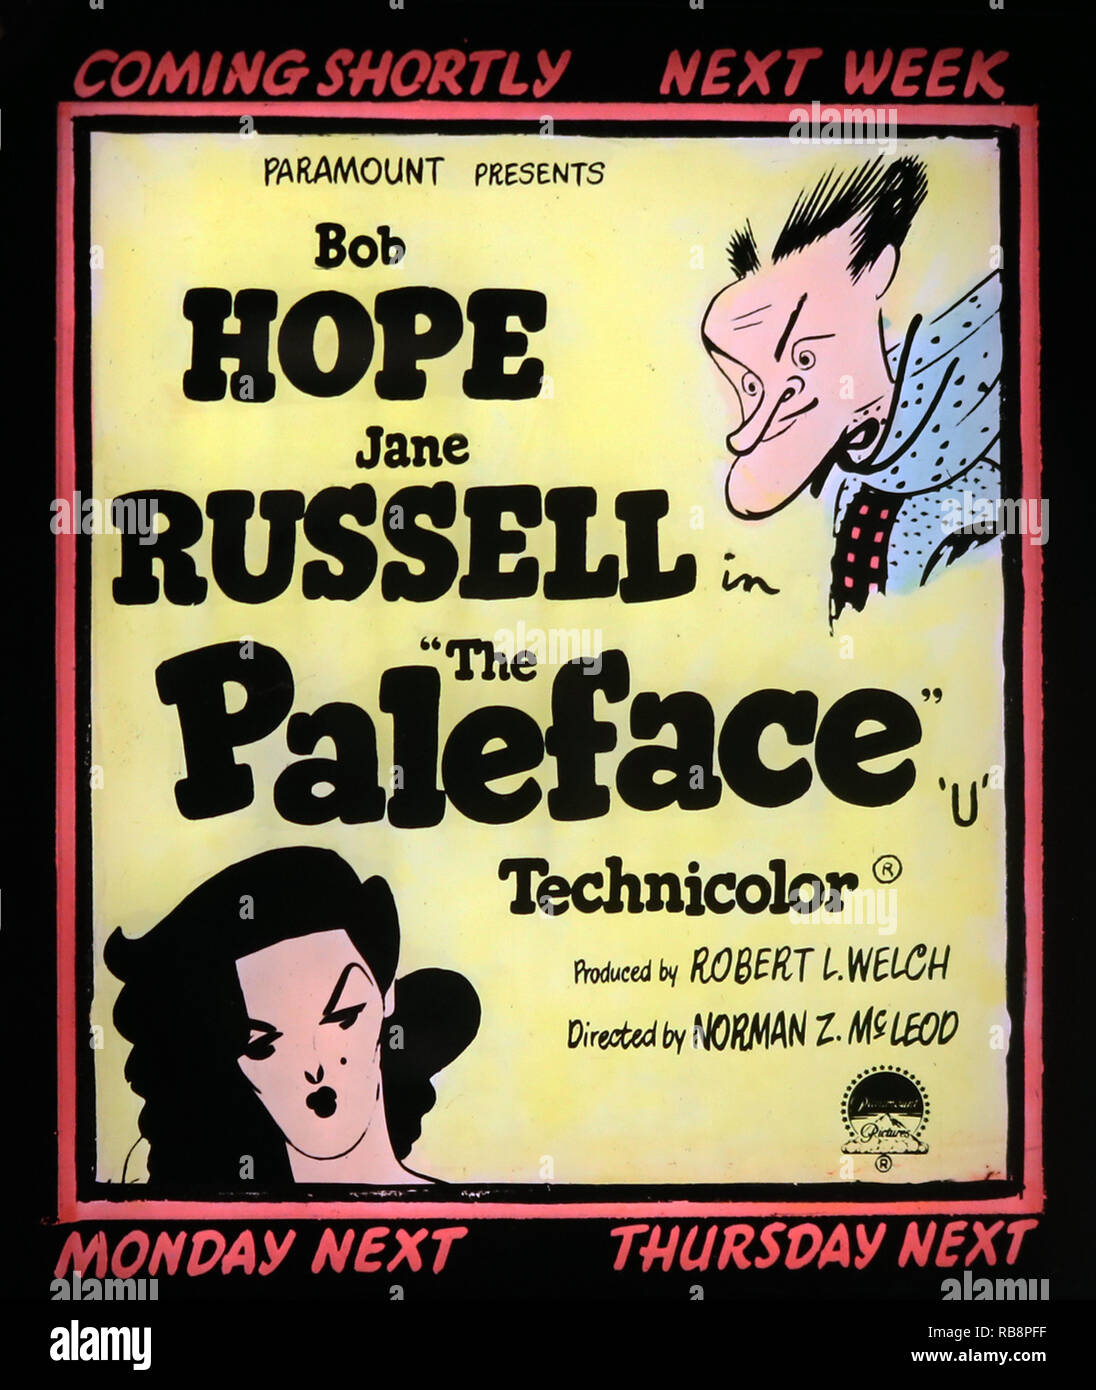 Bob Hope Jane Russell 'The Paleface' movie advertisement - Stock Image